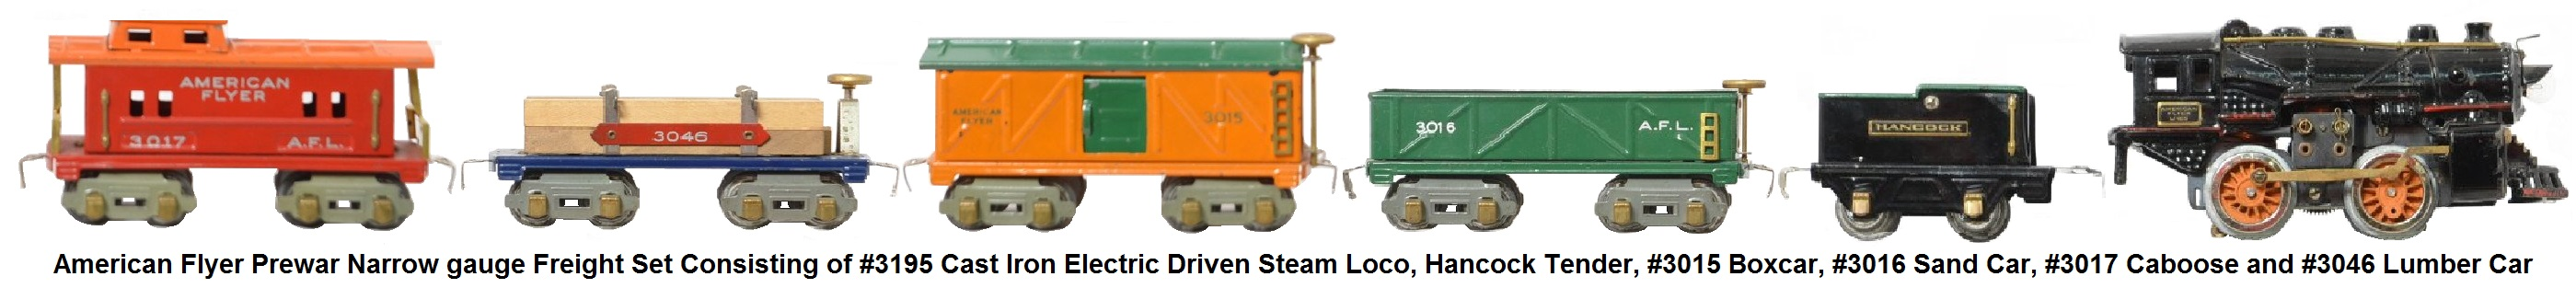 American Flyer 'O' gauge freight set consisting of #3195 cast iron electric steam outline locomotive, Hancock tender, #3015 boxcar, #3016 sand car, #3017 caboose and #3046 lumber car